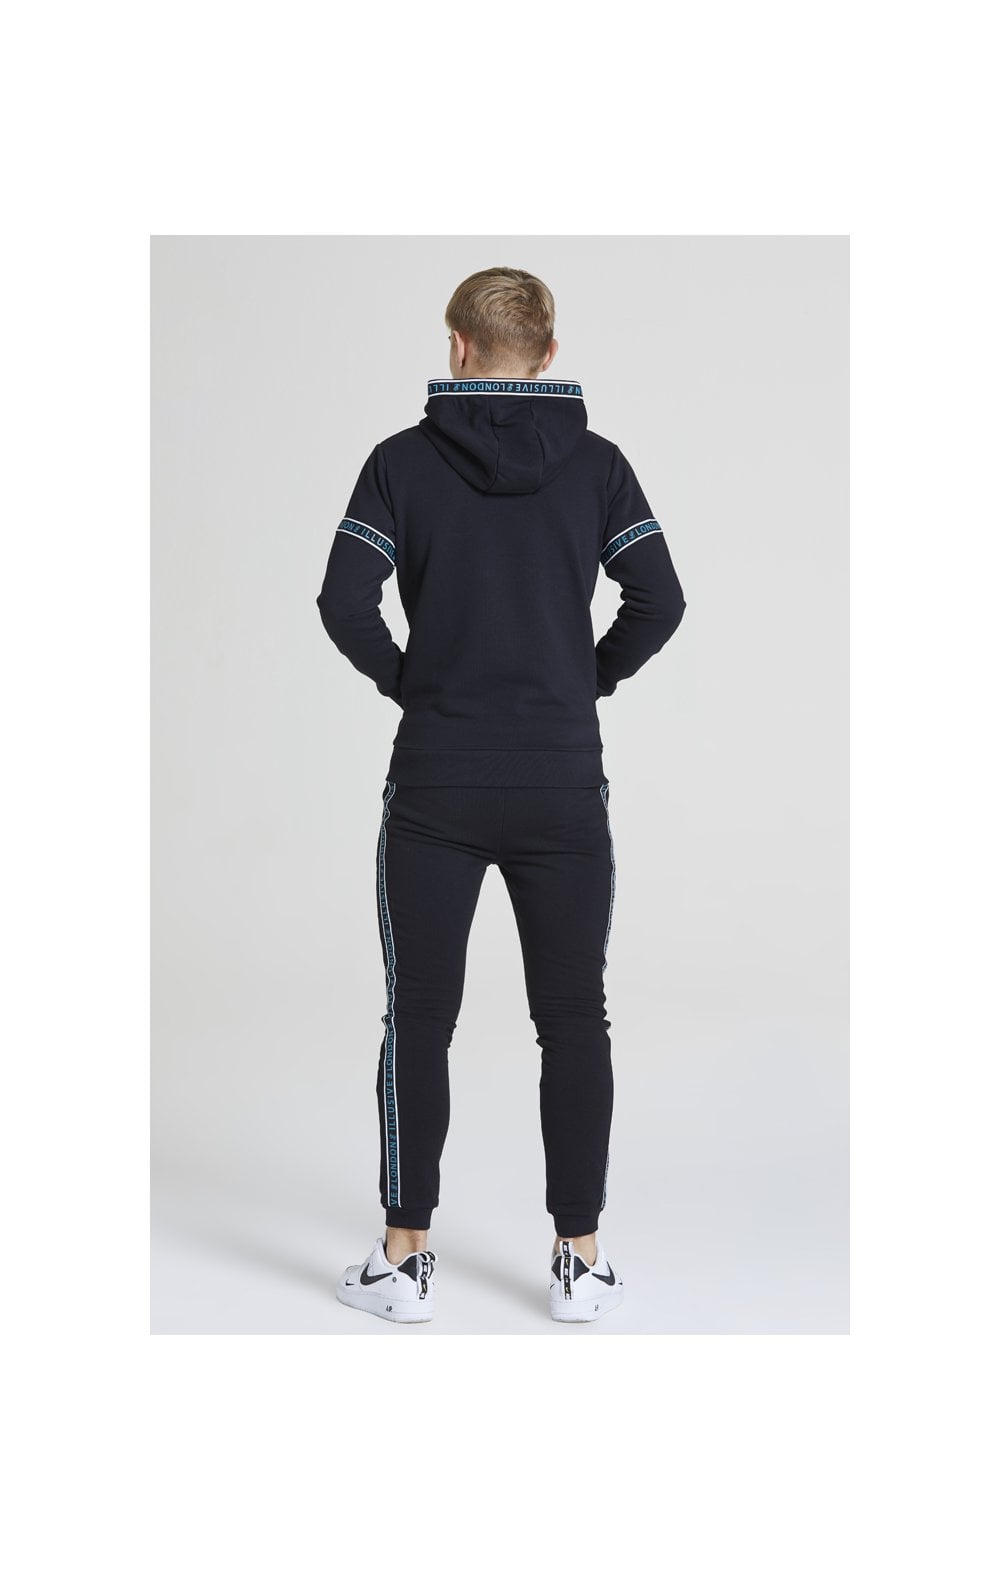 Illusive London Branded Joggers – Black & Teal Green (5)